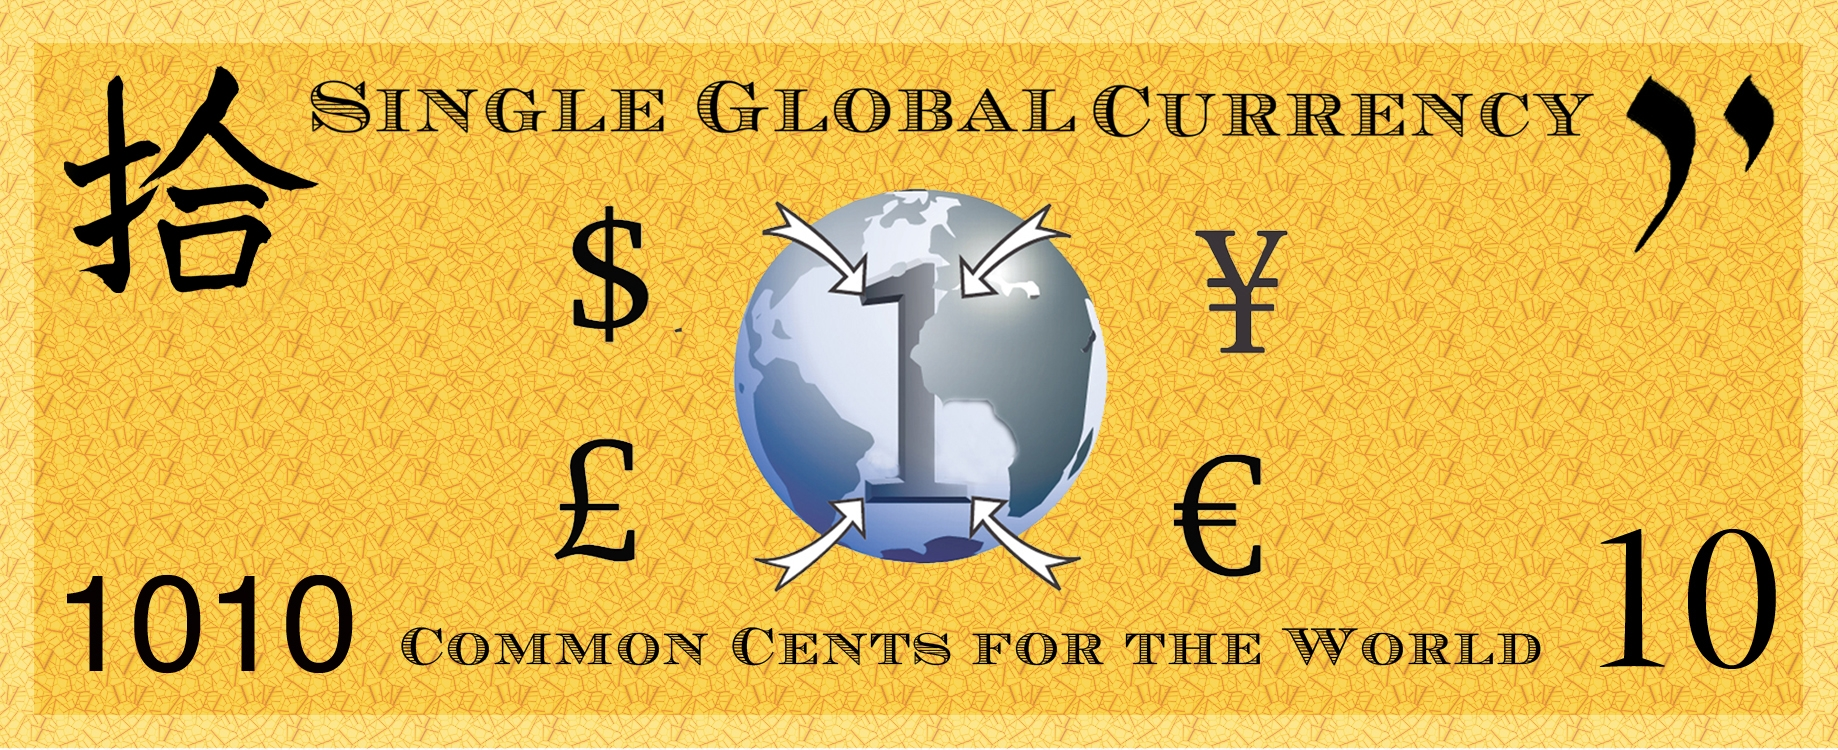 essay on single global currency First and foremost, if we have single global currency there people don't need to worry about exchange rates essay topic to essay body coherence.